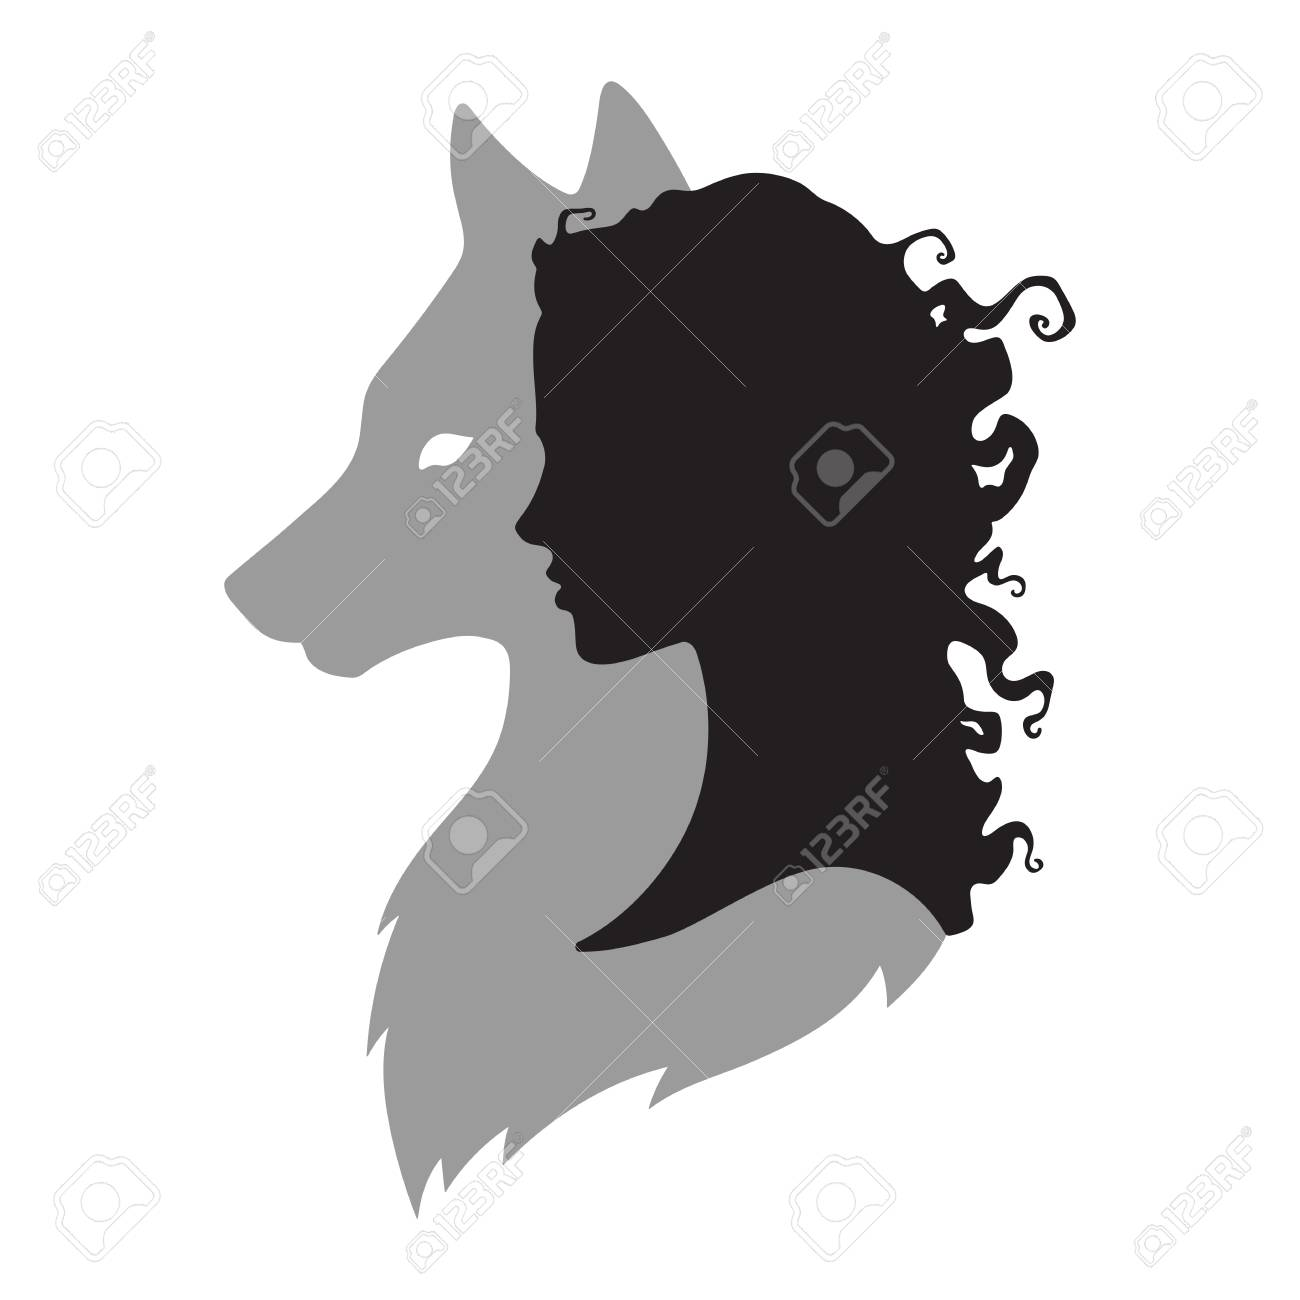 Silhouette of beautiful woman with shadow of wolf isolated. Sticker, print or tattoo design vector illustration. Pagan totem, wiccan familiar spirit art. - 88118460